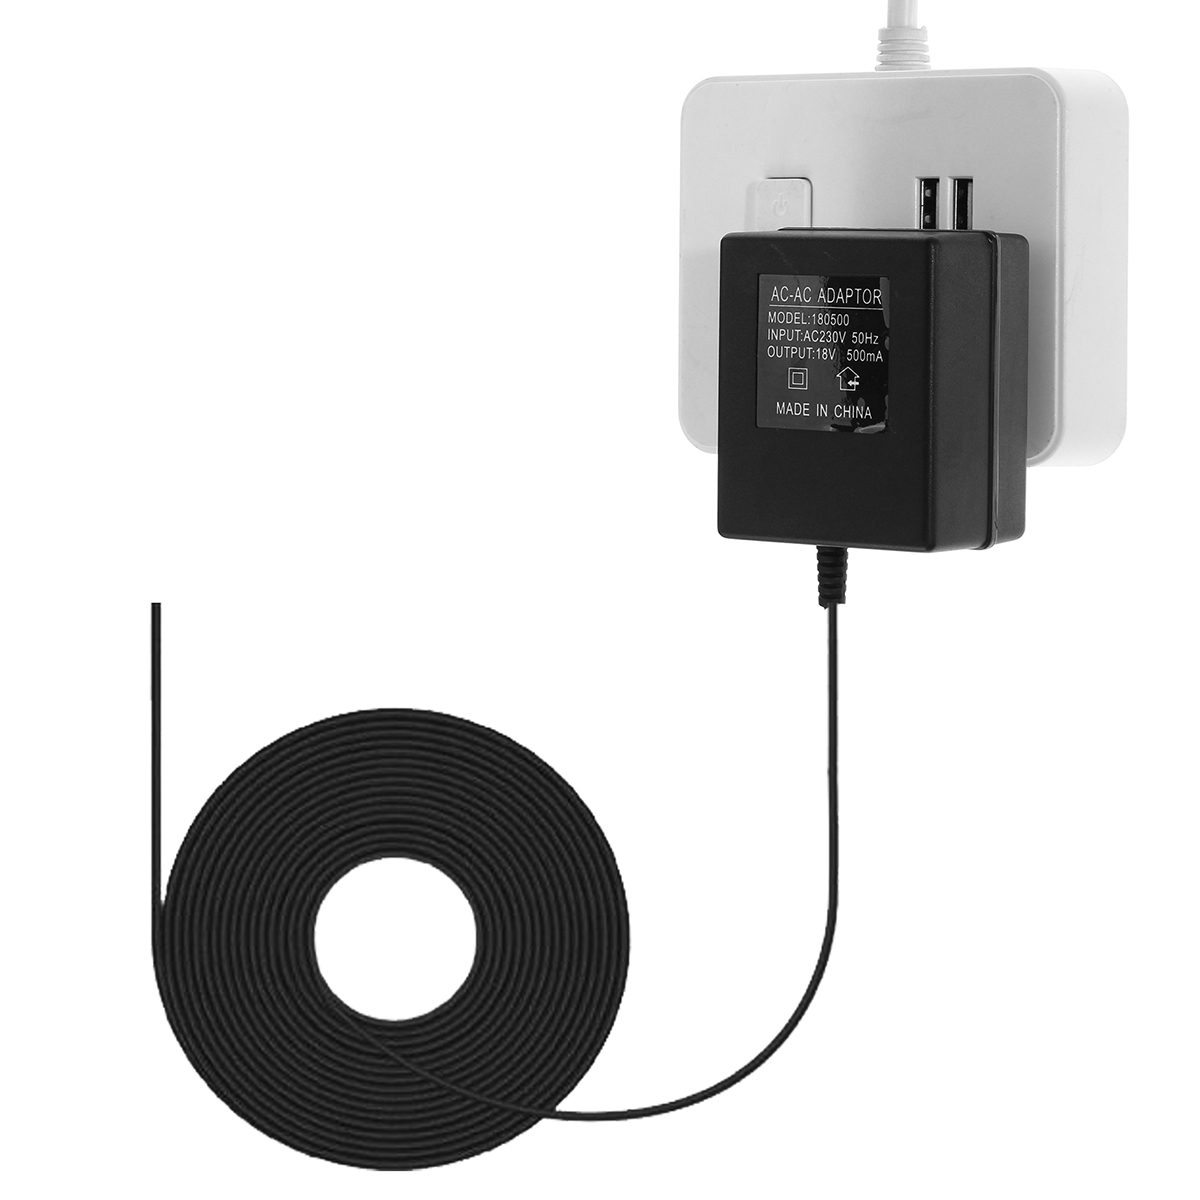 Power Supply Adapter For Ring Video Doorbell Pro For Ring Video Doorbell For Ring Video Doorbell For Nest Hello 5M Cable